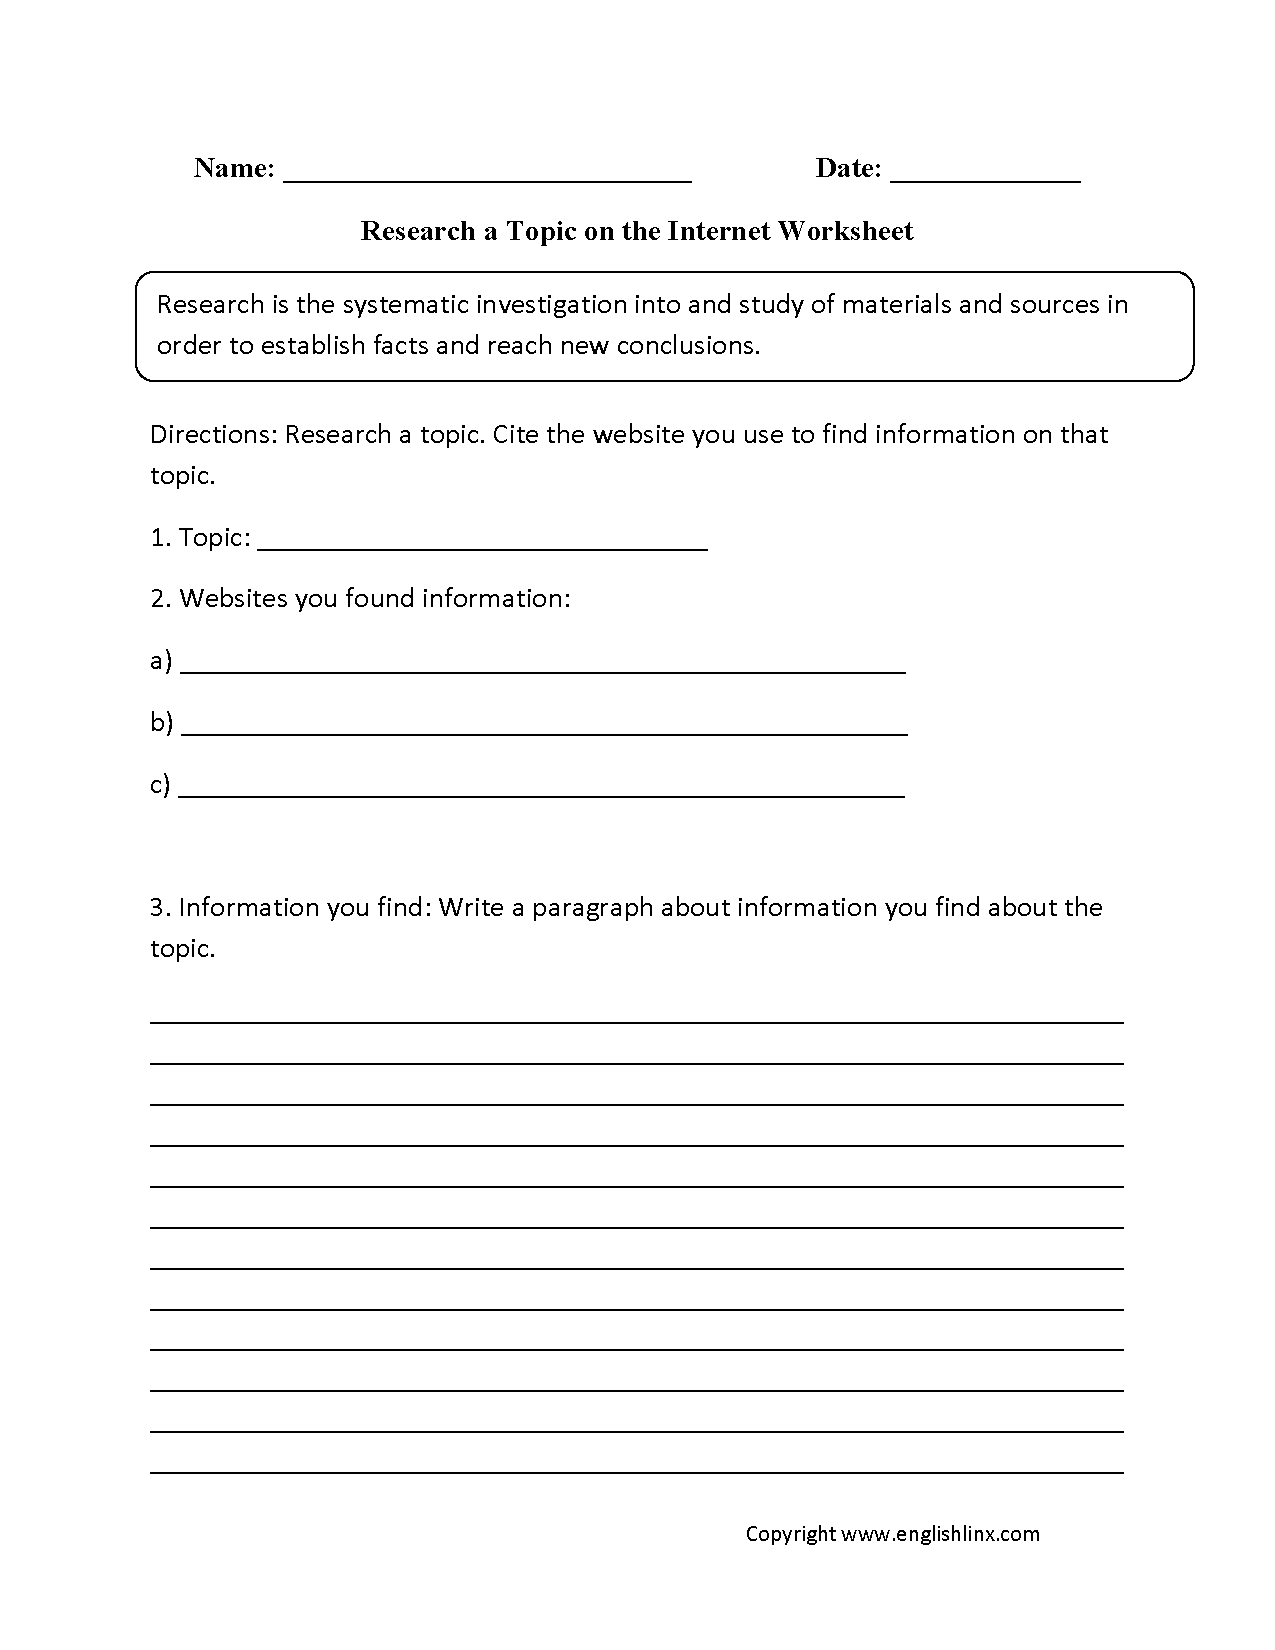 Aldiablosus  Scenic Englishlinxcom  Research Worksheets With Glamorous On The Internet Worksheet With Attractive Translation Symmetry Worksheets Also Oa Phonics Worksheets In Addition Scout Merit Badge Worksheet And Worksheets On Multiplication For Grade  As Well As English Alphabets Worksheets Additionally Year  Maths Sats Revision Worksheets From Englishlinxcom With Aldiablosus  Glamorous Englishlinxcom  Research Worksheets With Attractive On The Internet Worksheet And Scenic Translation Symmetry Worksheets Also Oa Phonics Worksheets In Addition Scout Merit Badge Worksheet From Englishlinxcom